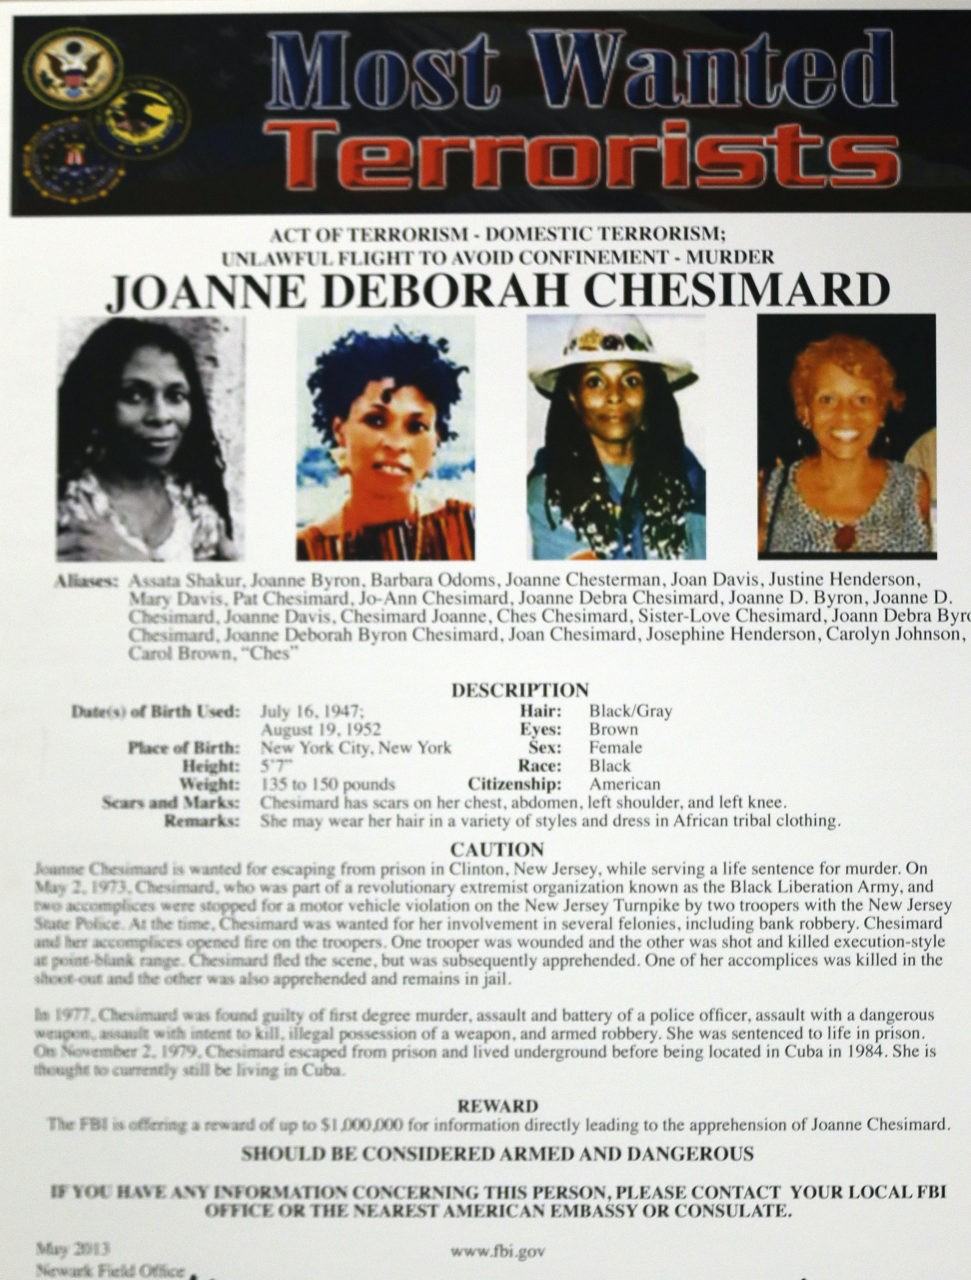 A poster with photographs of Joanne Chesimard (aka Assata Shakur), a convicted murderer and fugitive for more than 30 years, was on display during a news conference in Newark, N.J., on May 2, 2013 -- the 40th anniversary of the violent confrontation that led to the slaying of a New Jersey state trooper. The reward for her capture and return was doubled to $2 million, and the FBI made Chesimard, now living in Cuba, the first woman on its list of most wanted terrorists.  (AP Photo/Julio Cortez)